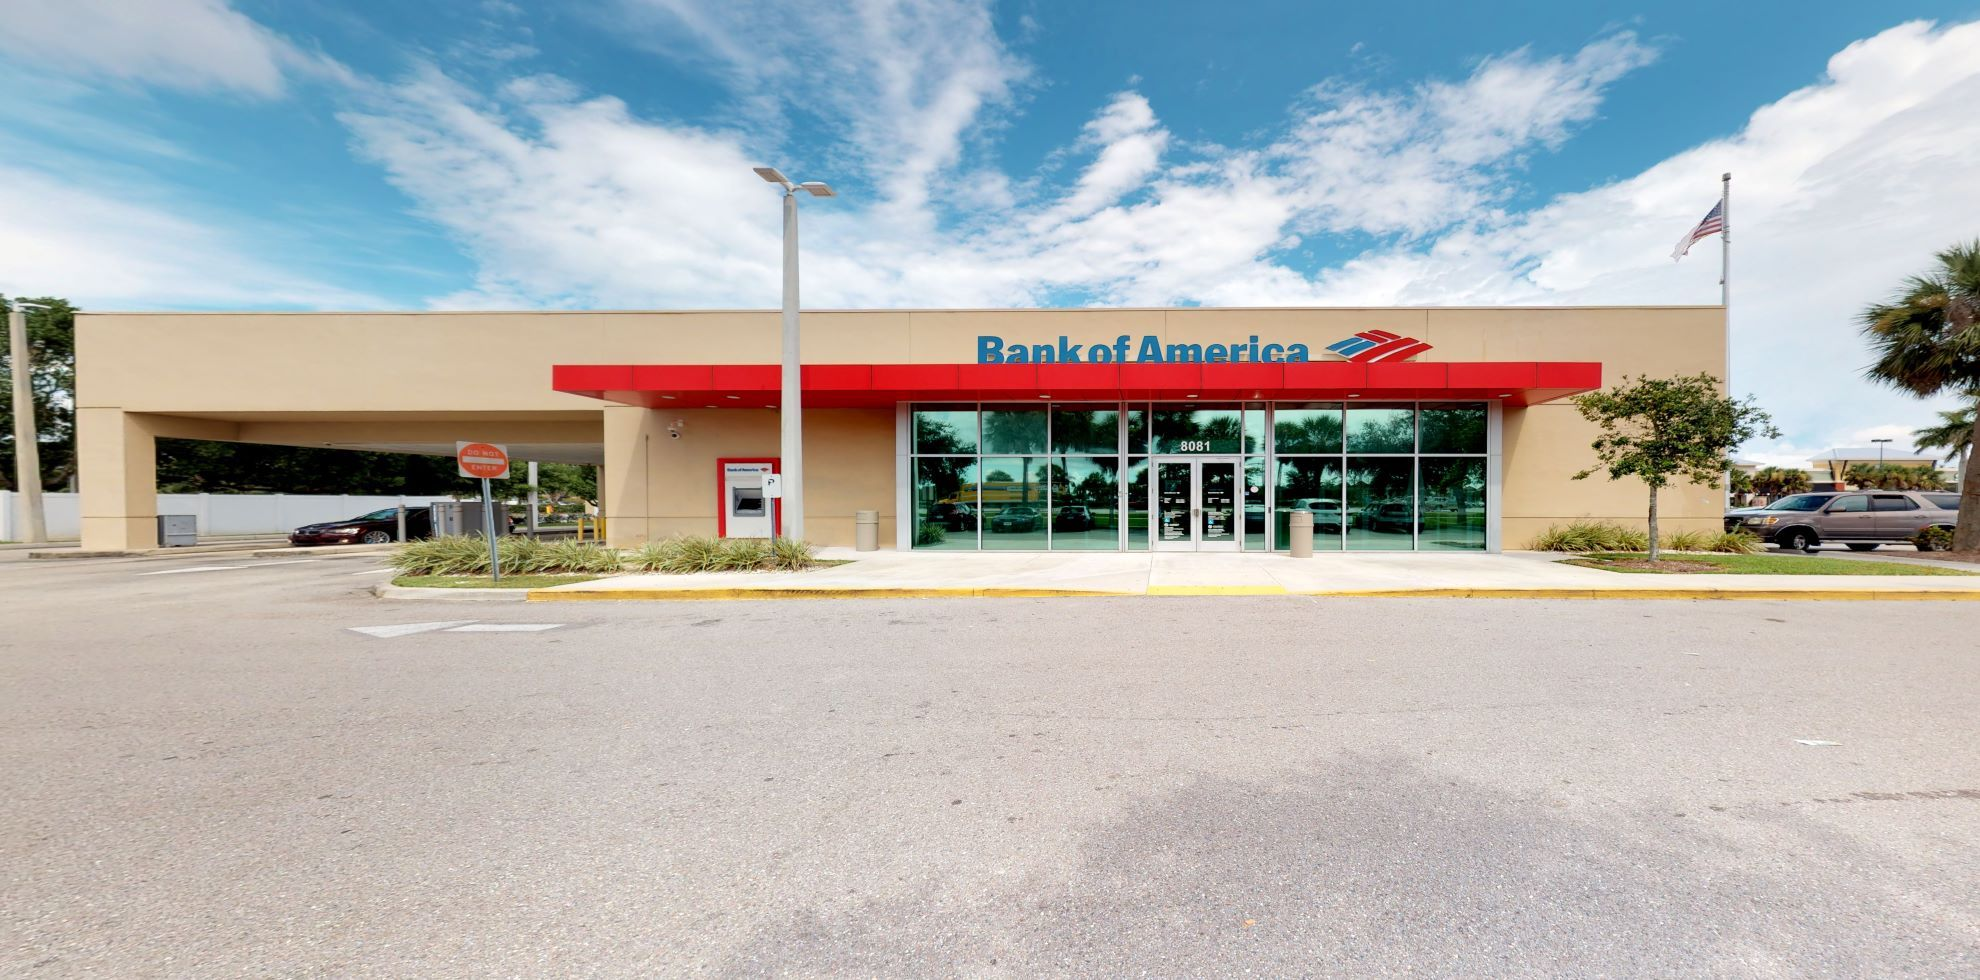 Bank of America financial center with drive-thru ATM and teller   8081 Dani Dr, Fort Myers, FL 33912